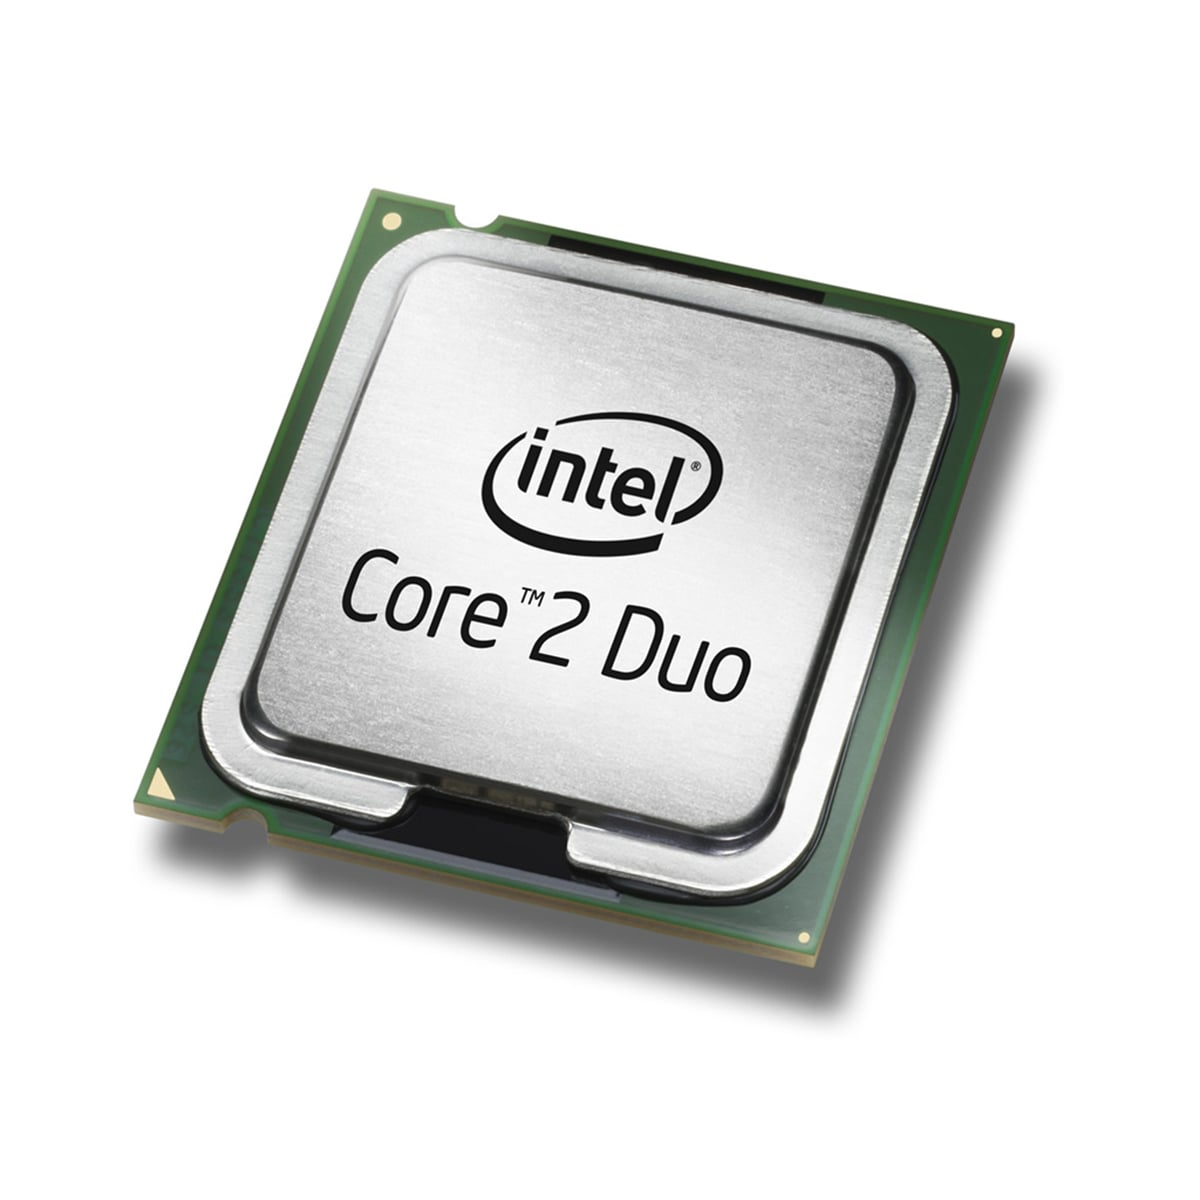 Processador Intel Core 2 Duo E4300 1,80Ghz 2M 800MHz - Socket 775 - Seminovo